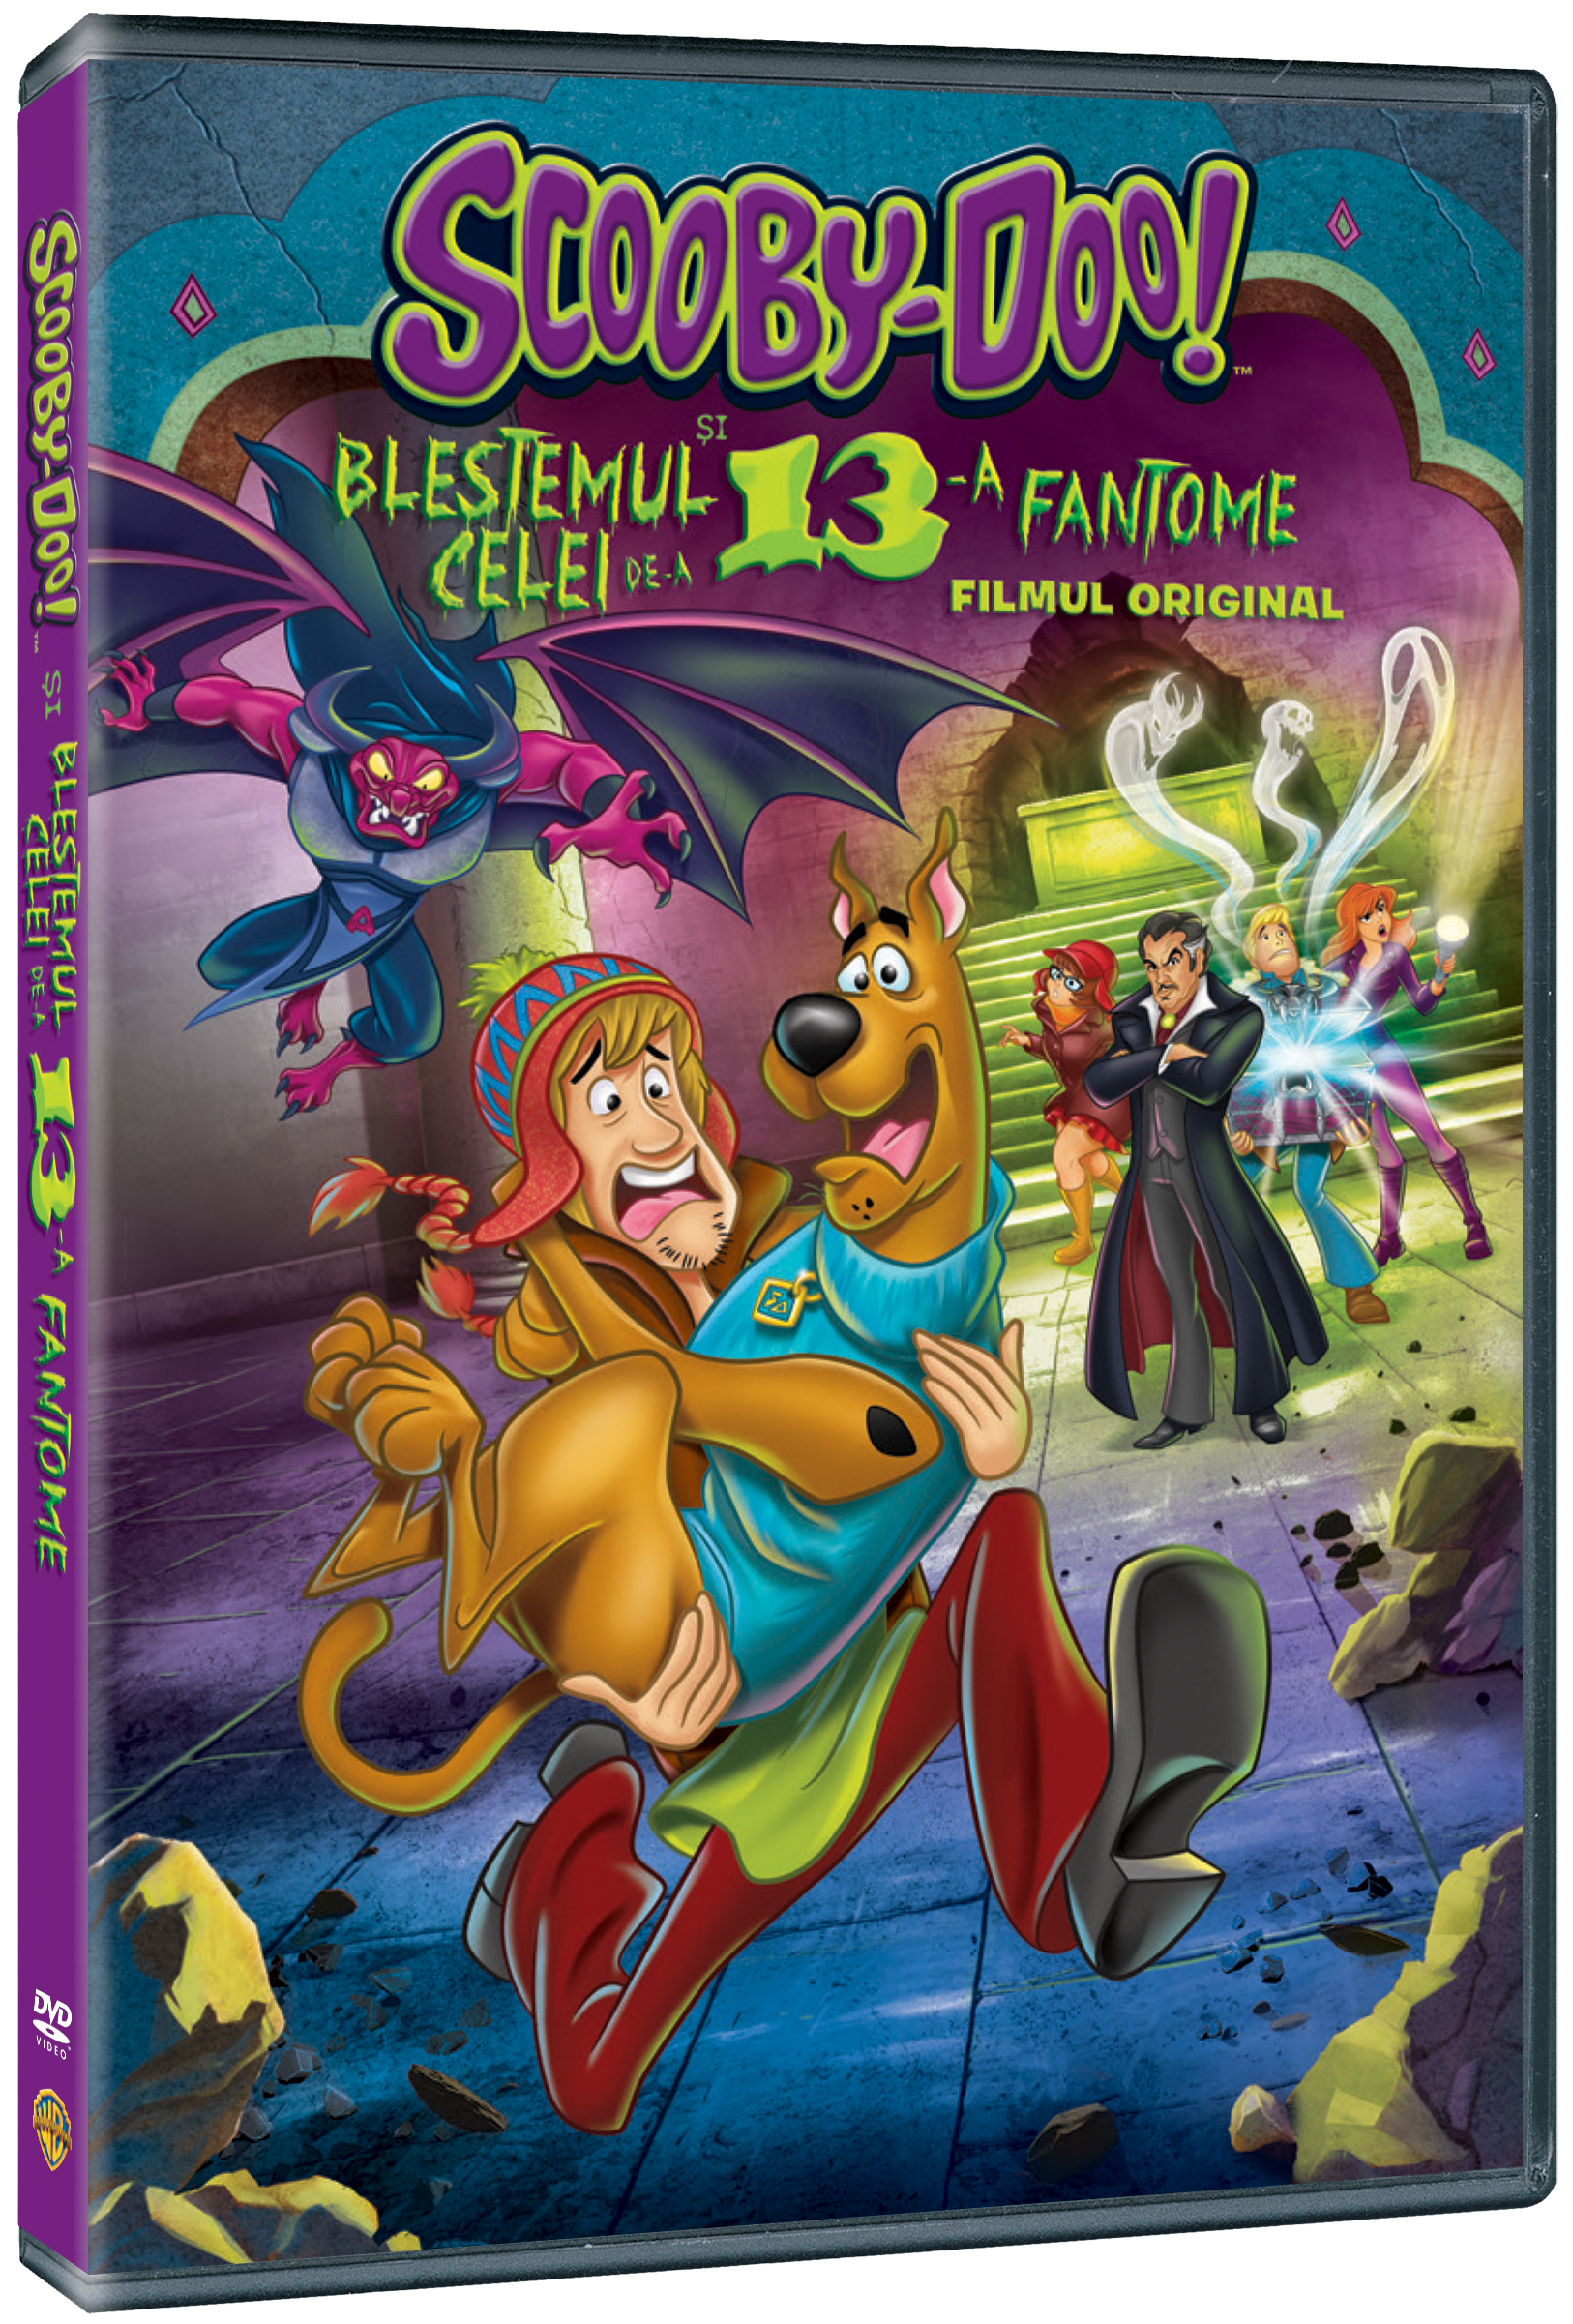 Scooby-Doo! Blestemul celei de-a 13-a fantoma / Scooby-Doo! and the Curse of the 13th Ghost thumbnail